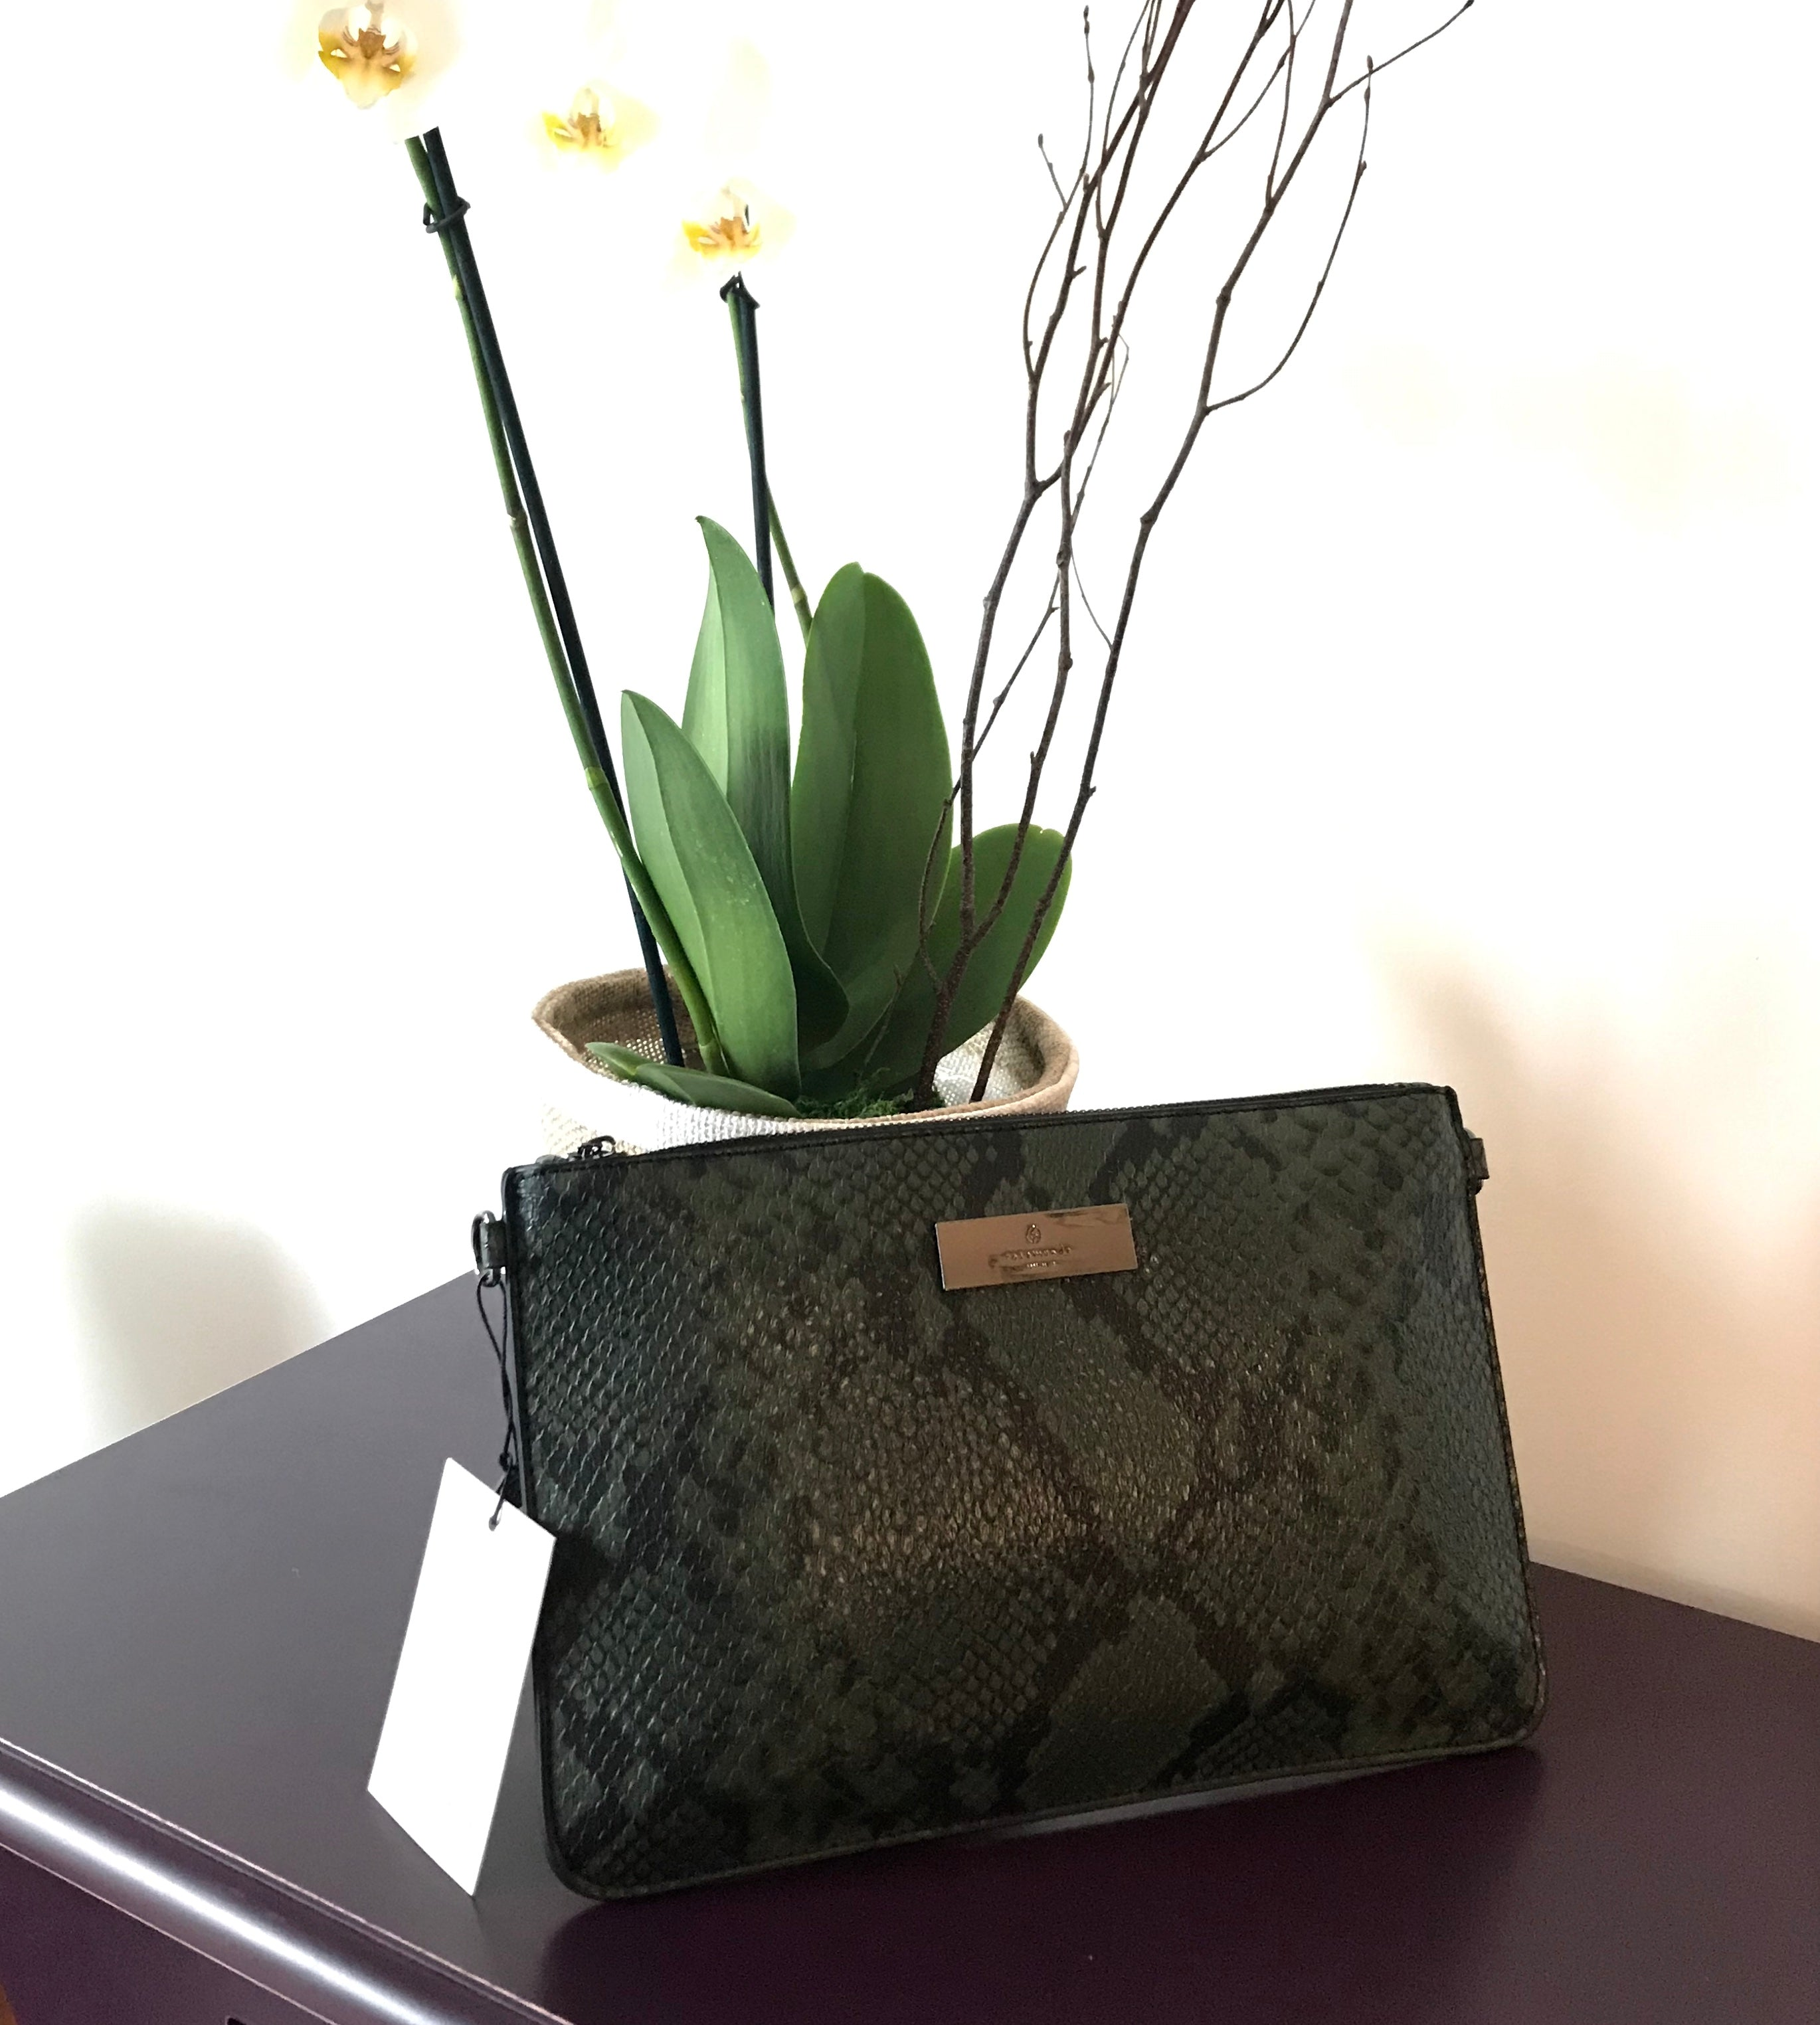 Rosemunde Copenhagen Arezzo Clutch in Black and Green Python Print on Sale